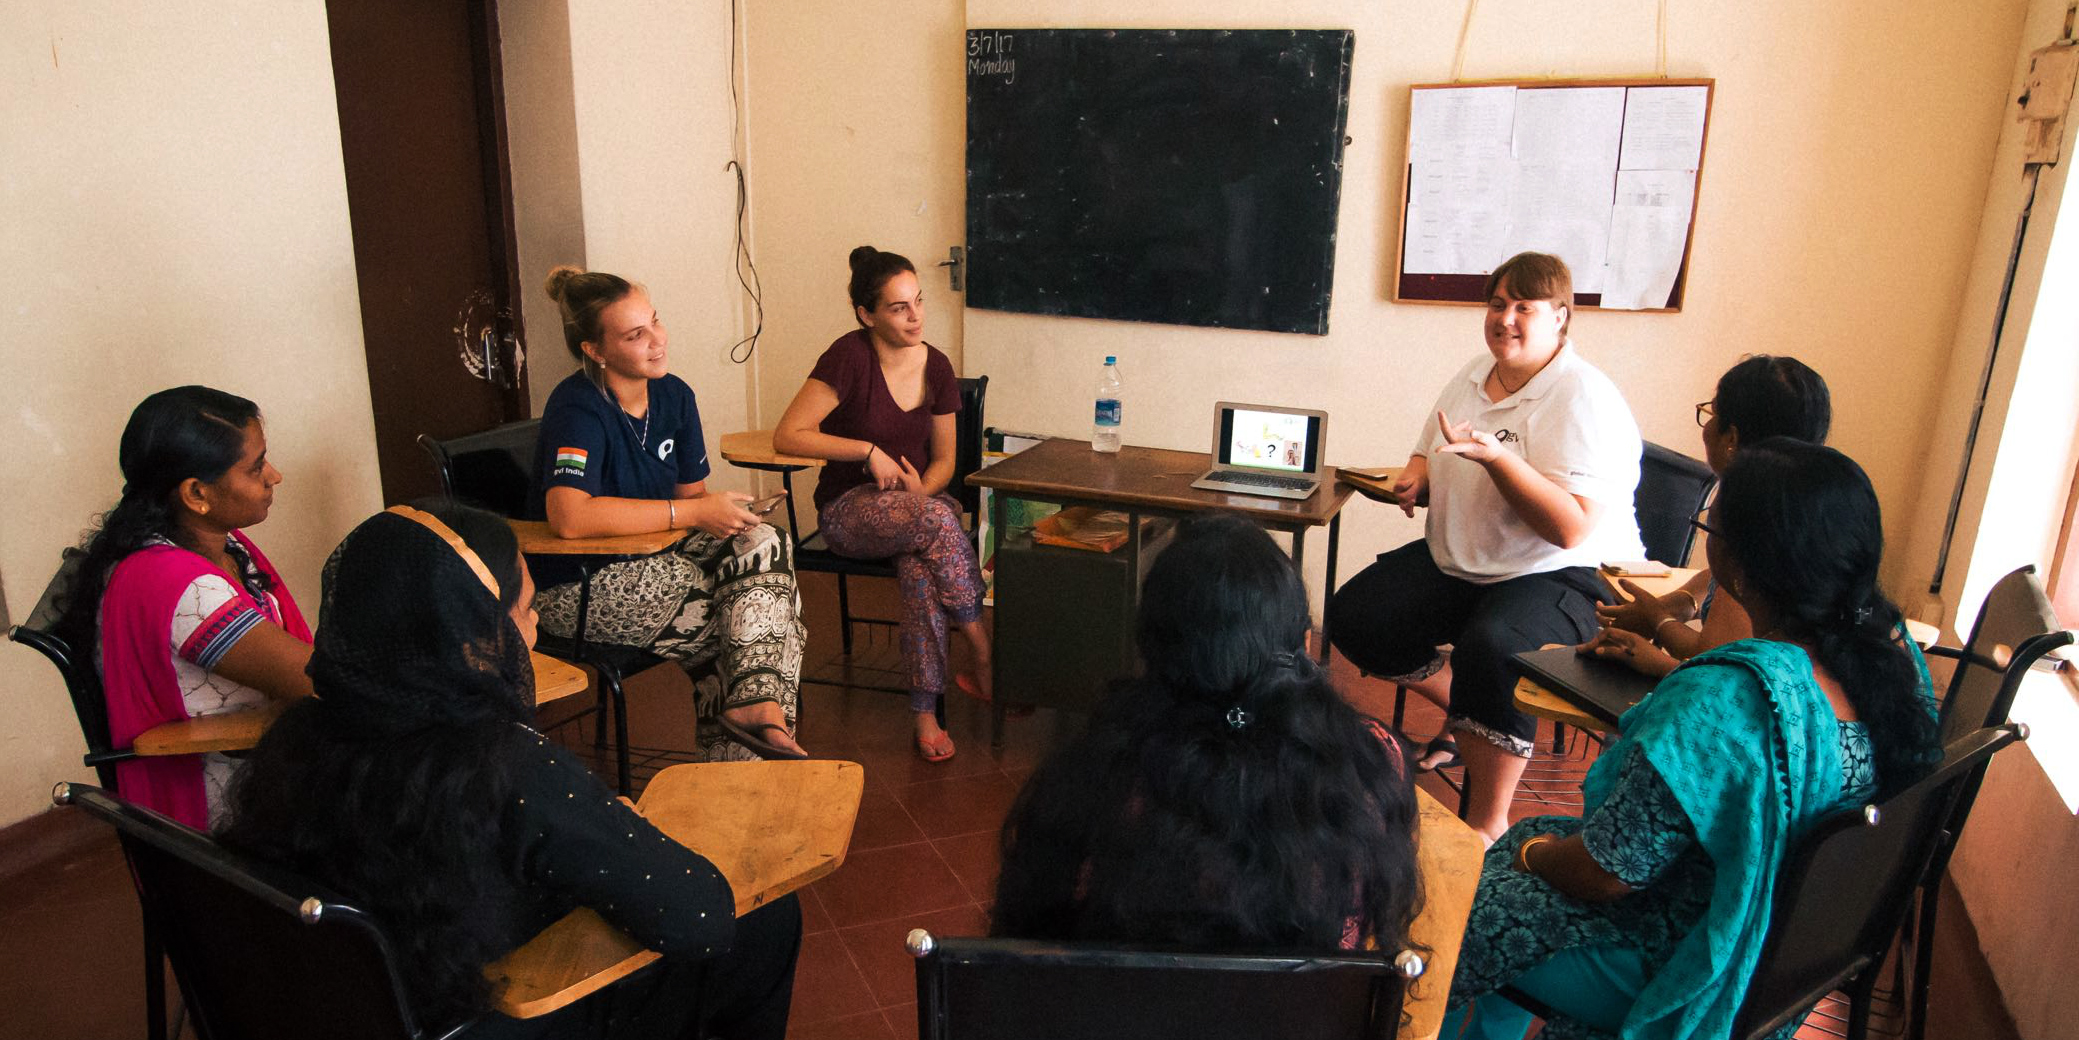 Why do I have to pay to volunteer abroad? Your program fees cover the costs of essential training. Pictured: a group of women attend a GVI workshop in India.